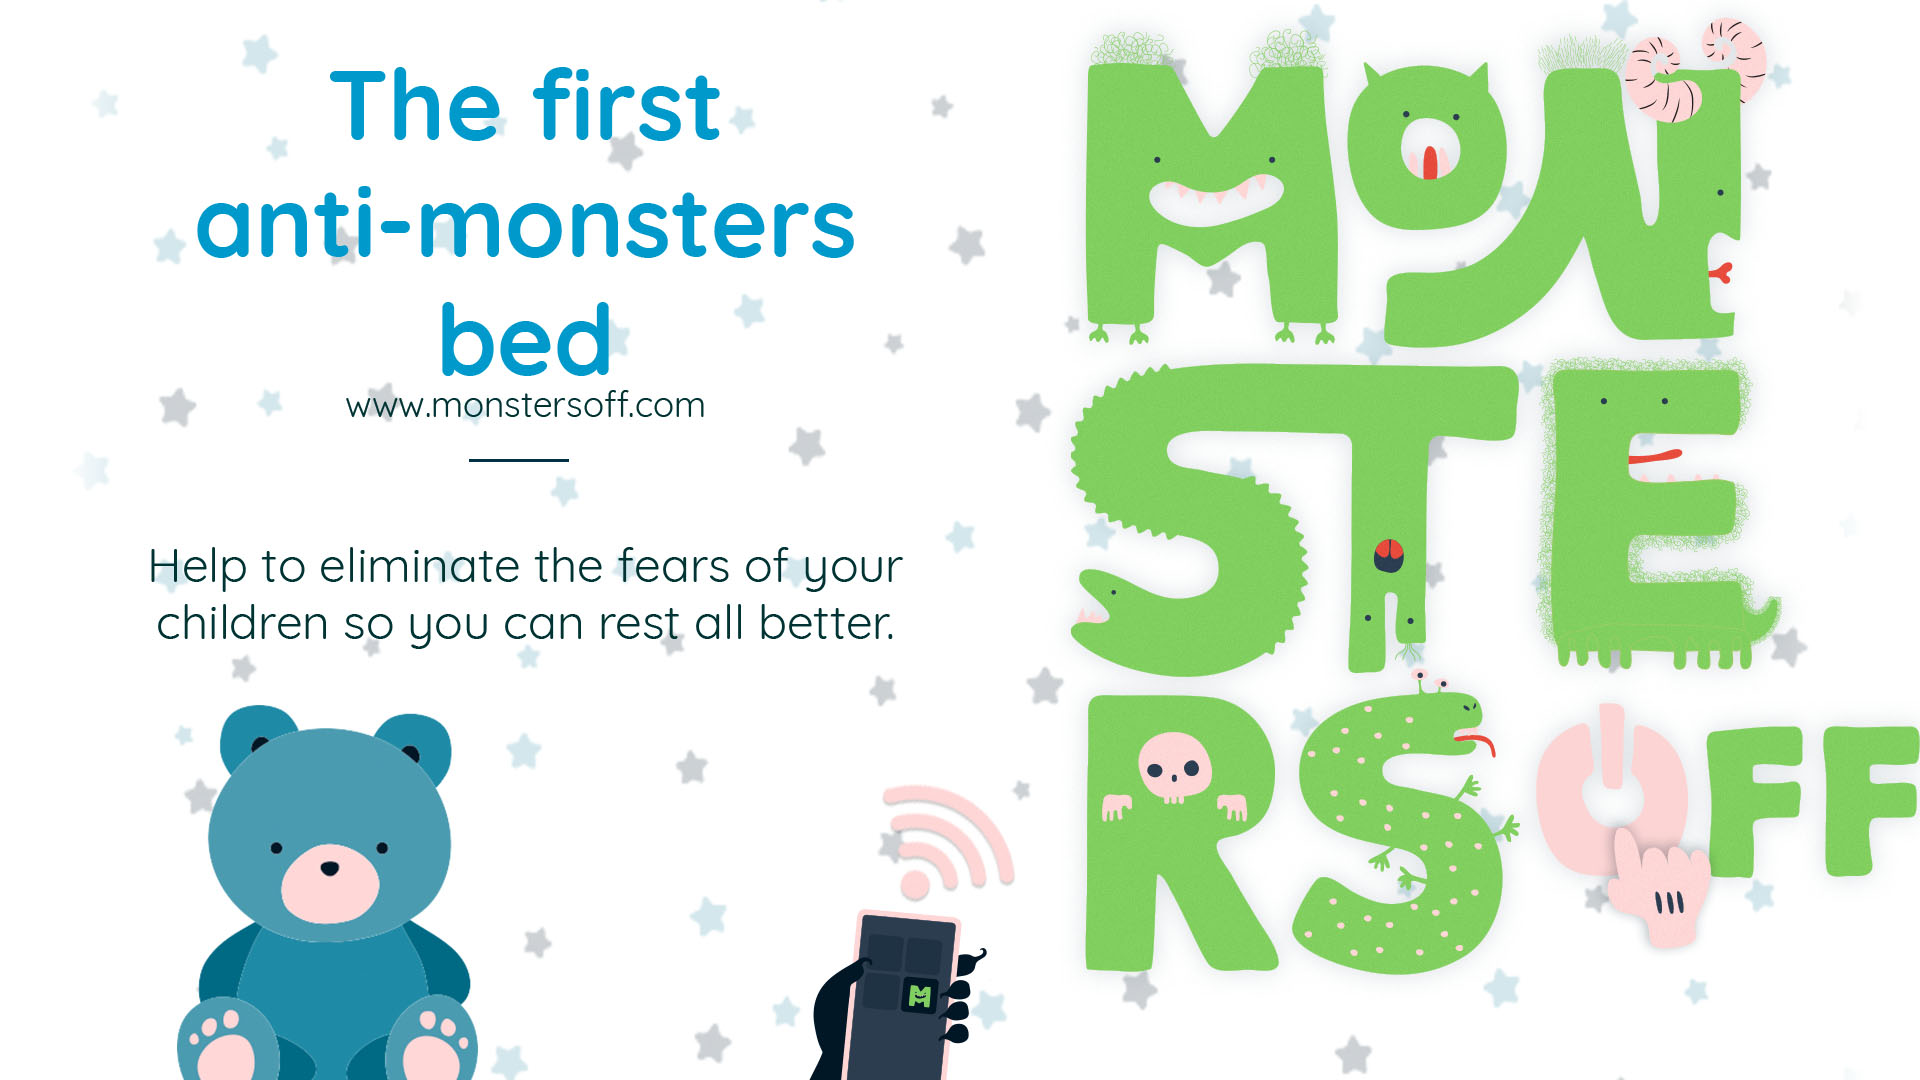 The first anti-monsters bed